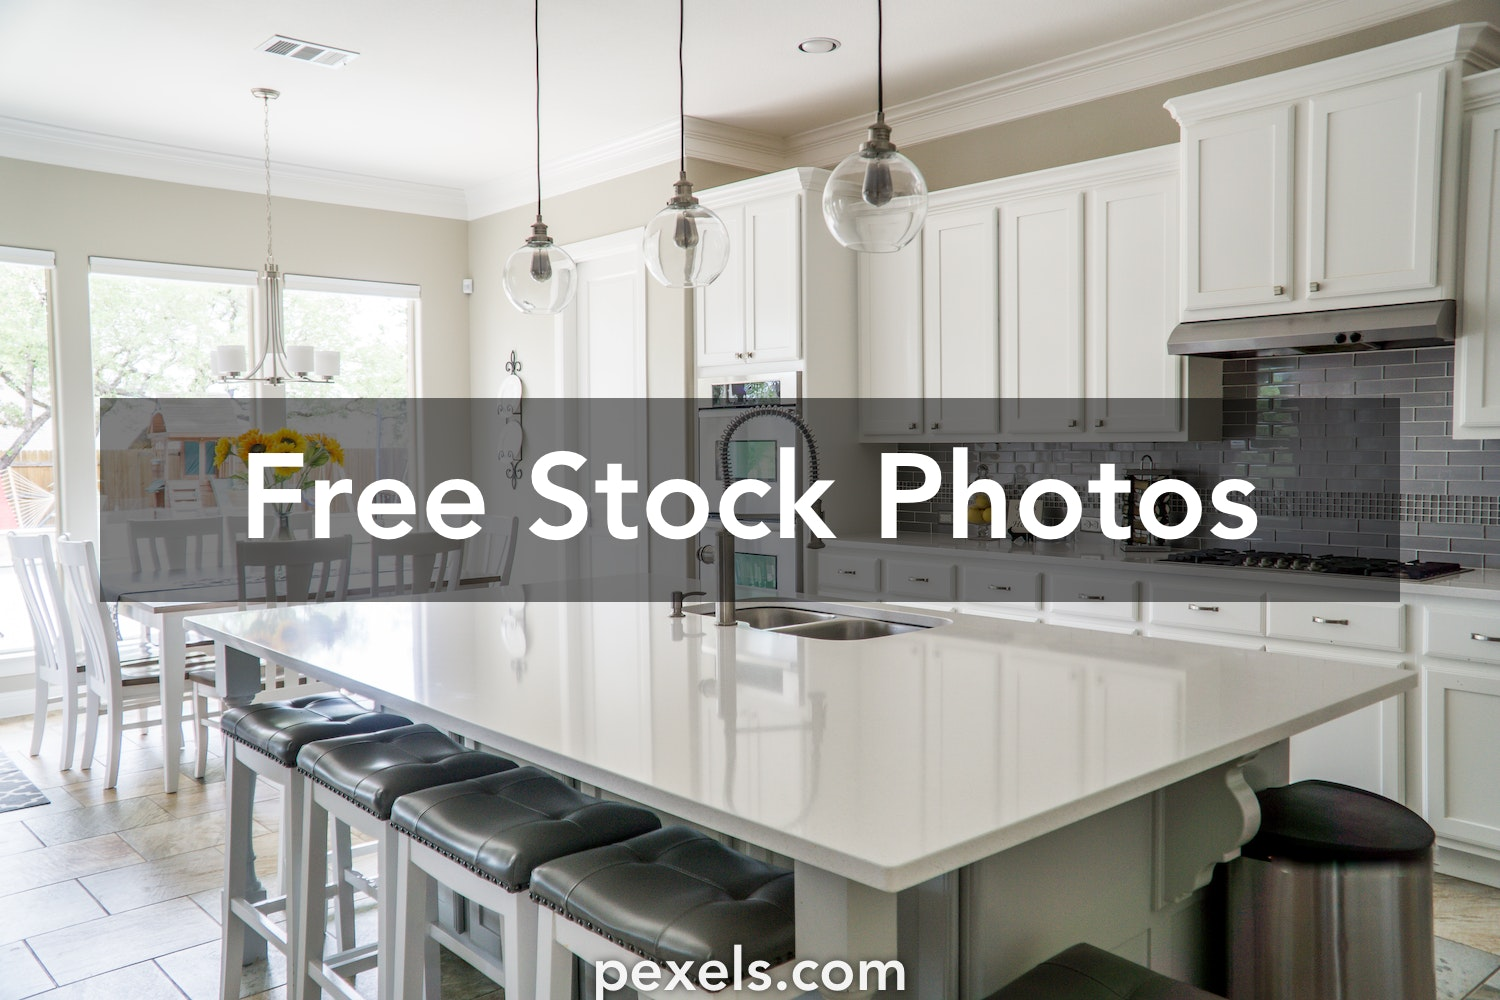 9+ Kitchen Photos · Pexels · Free Stock Photos